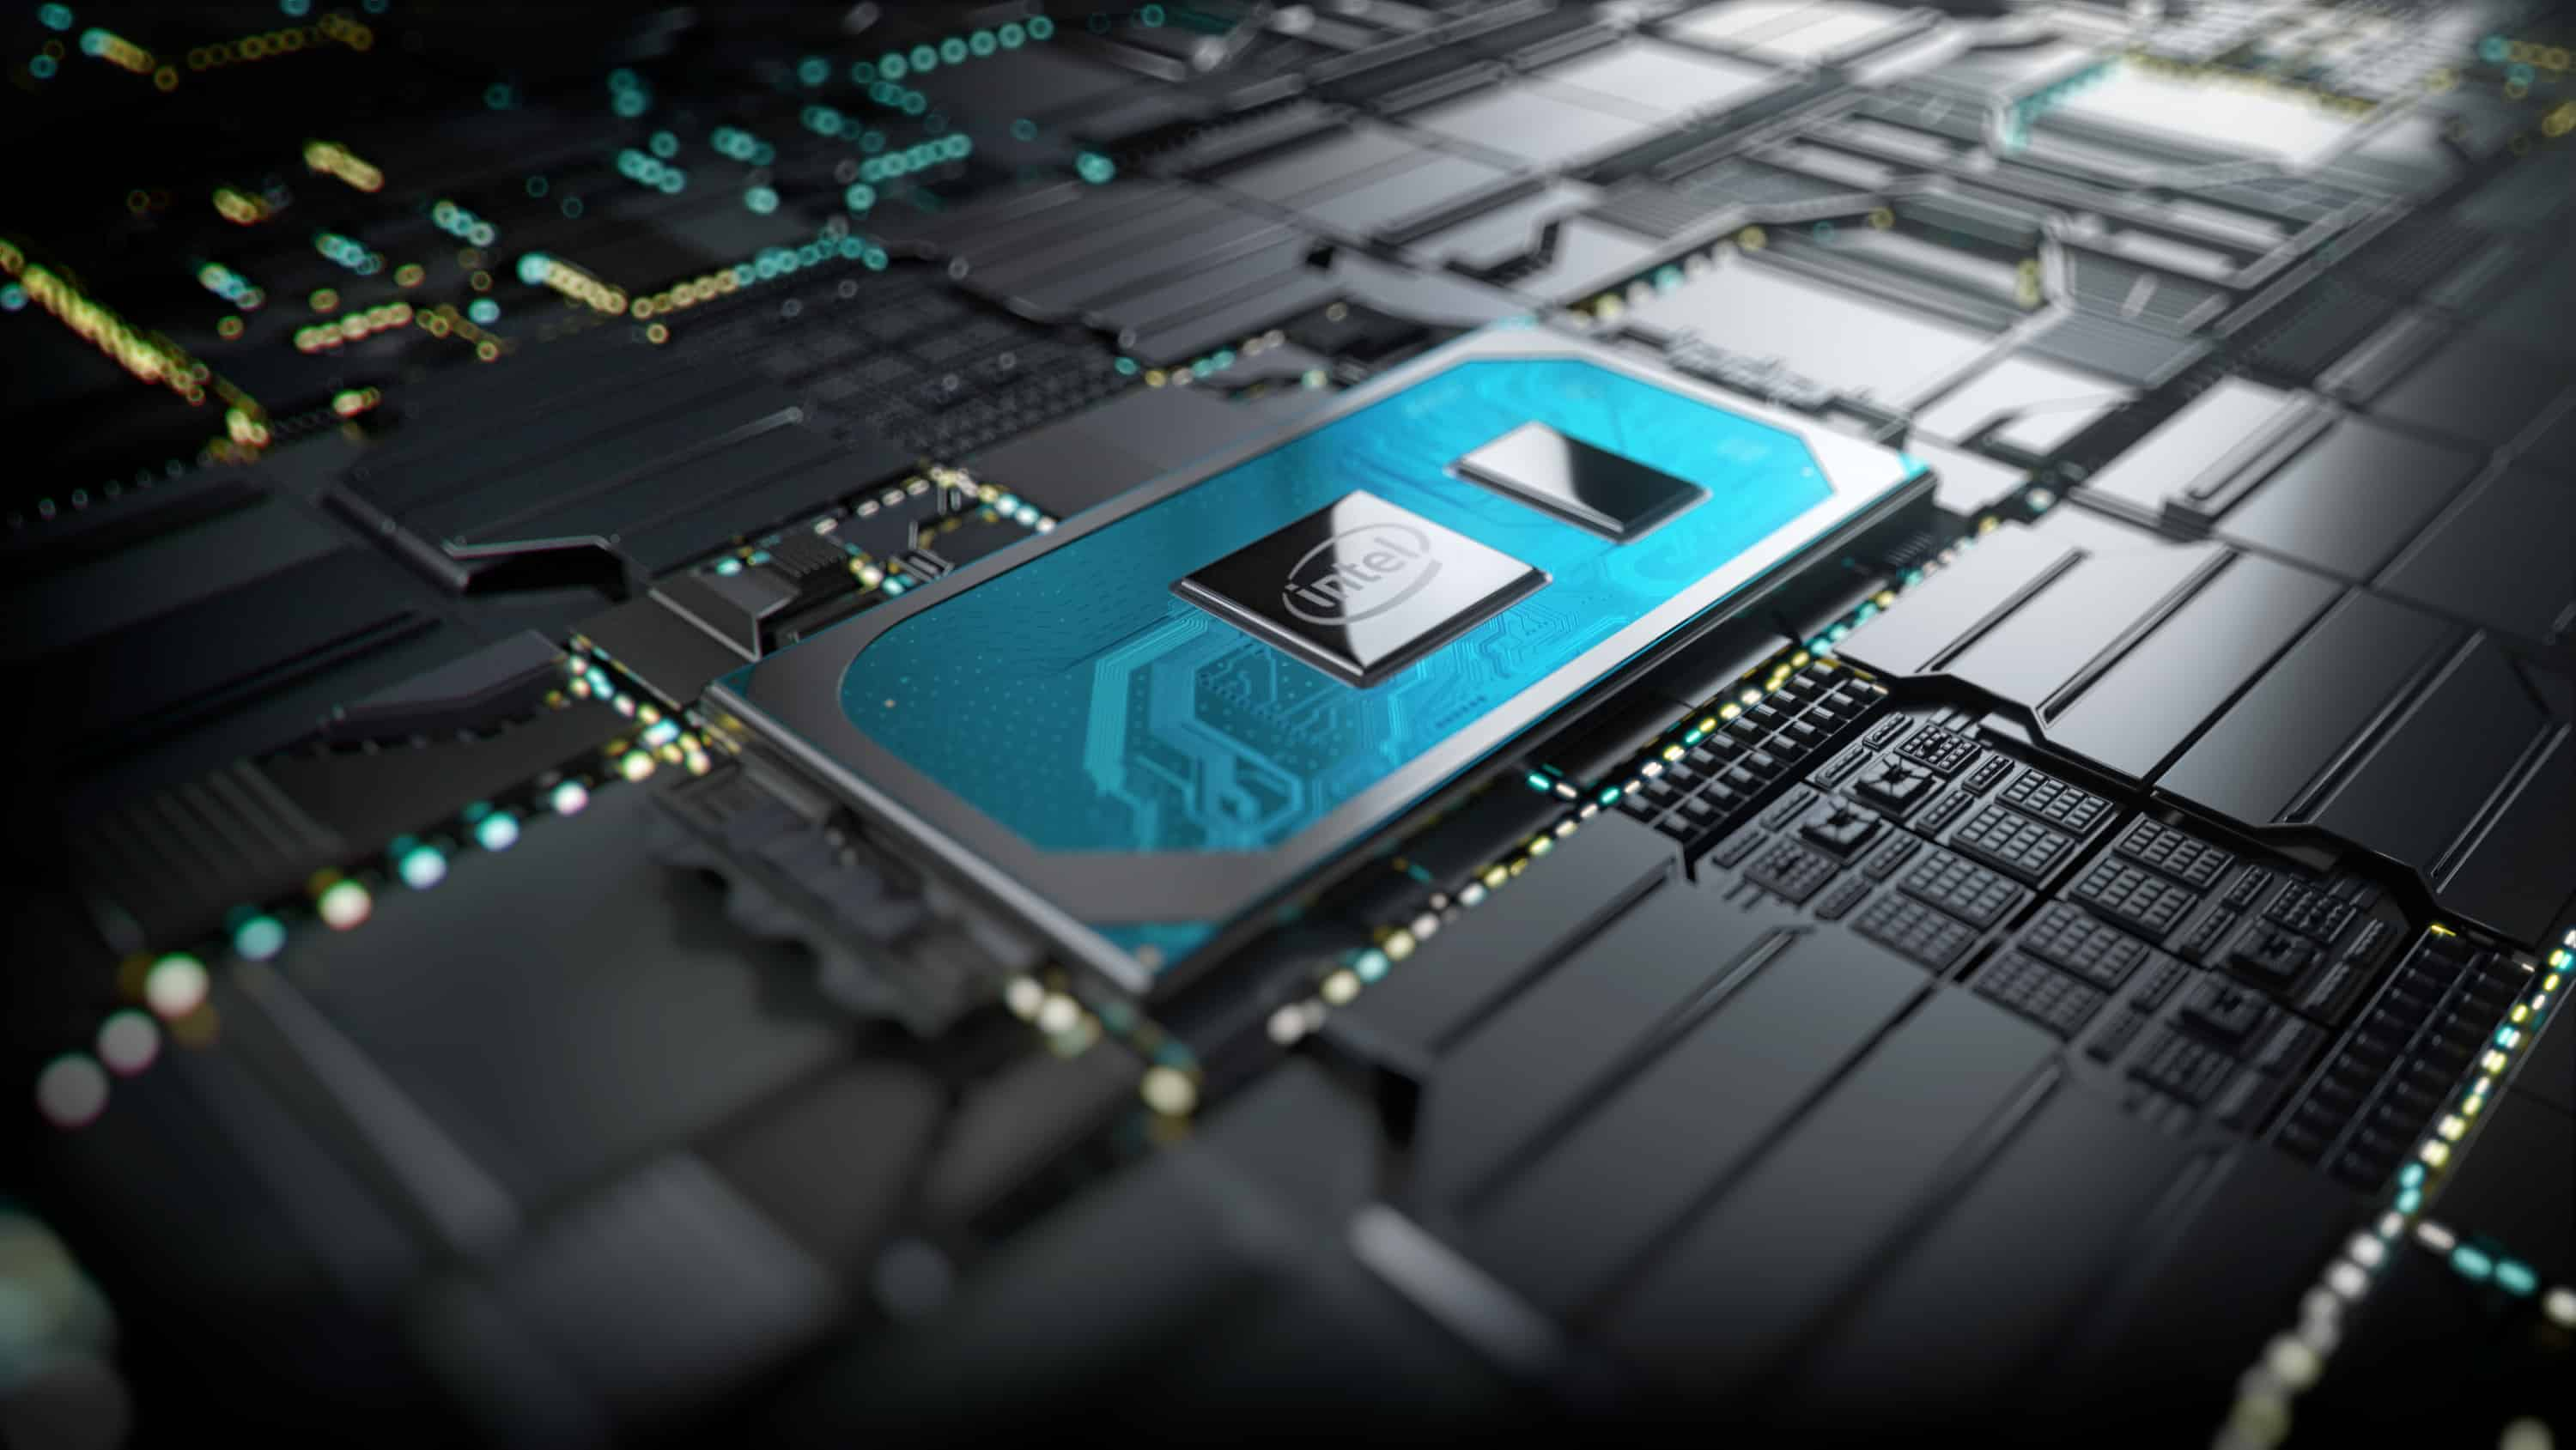 Intel Product being shown at this year Computex 2019